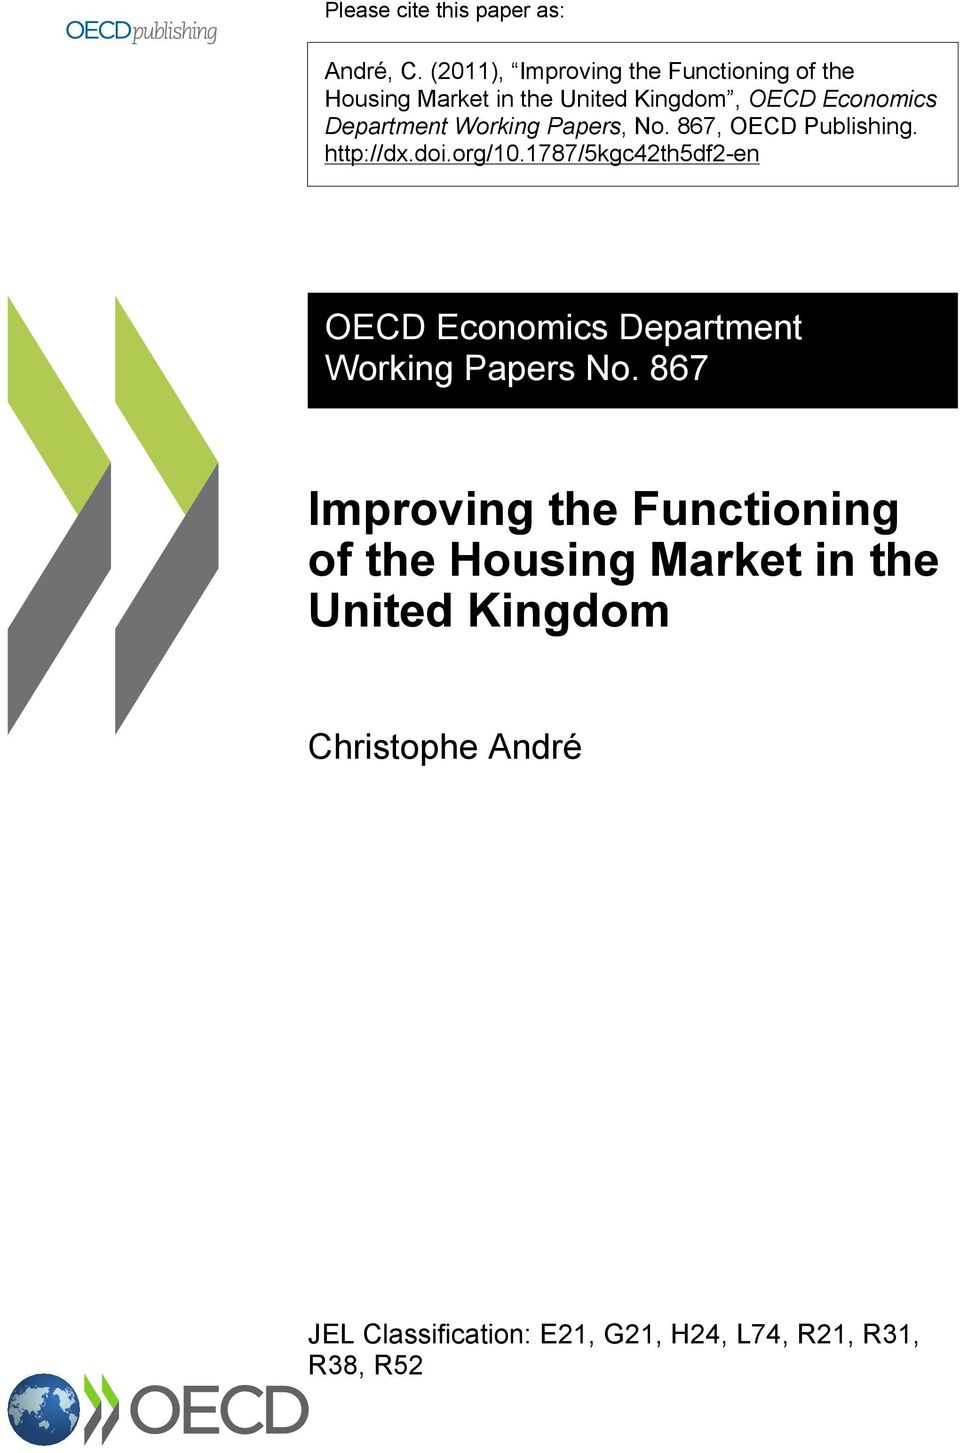 Working Papers, No. 867, OECD Publishing. http://dx.doi.org/10.